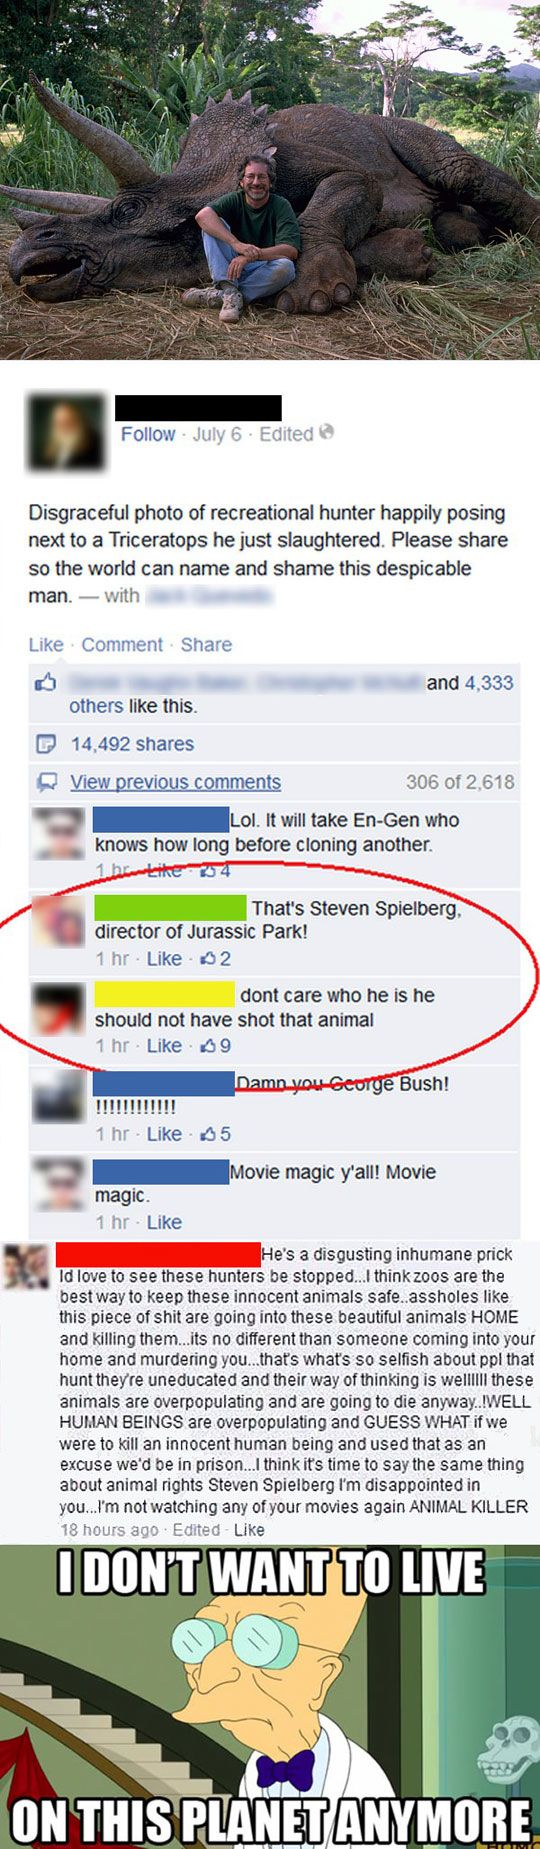 SOME PEOPLE ARE JUST STUPID!